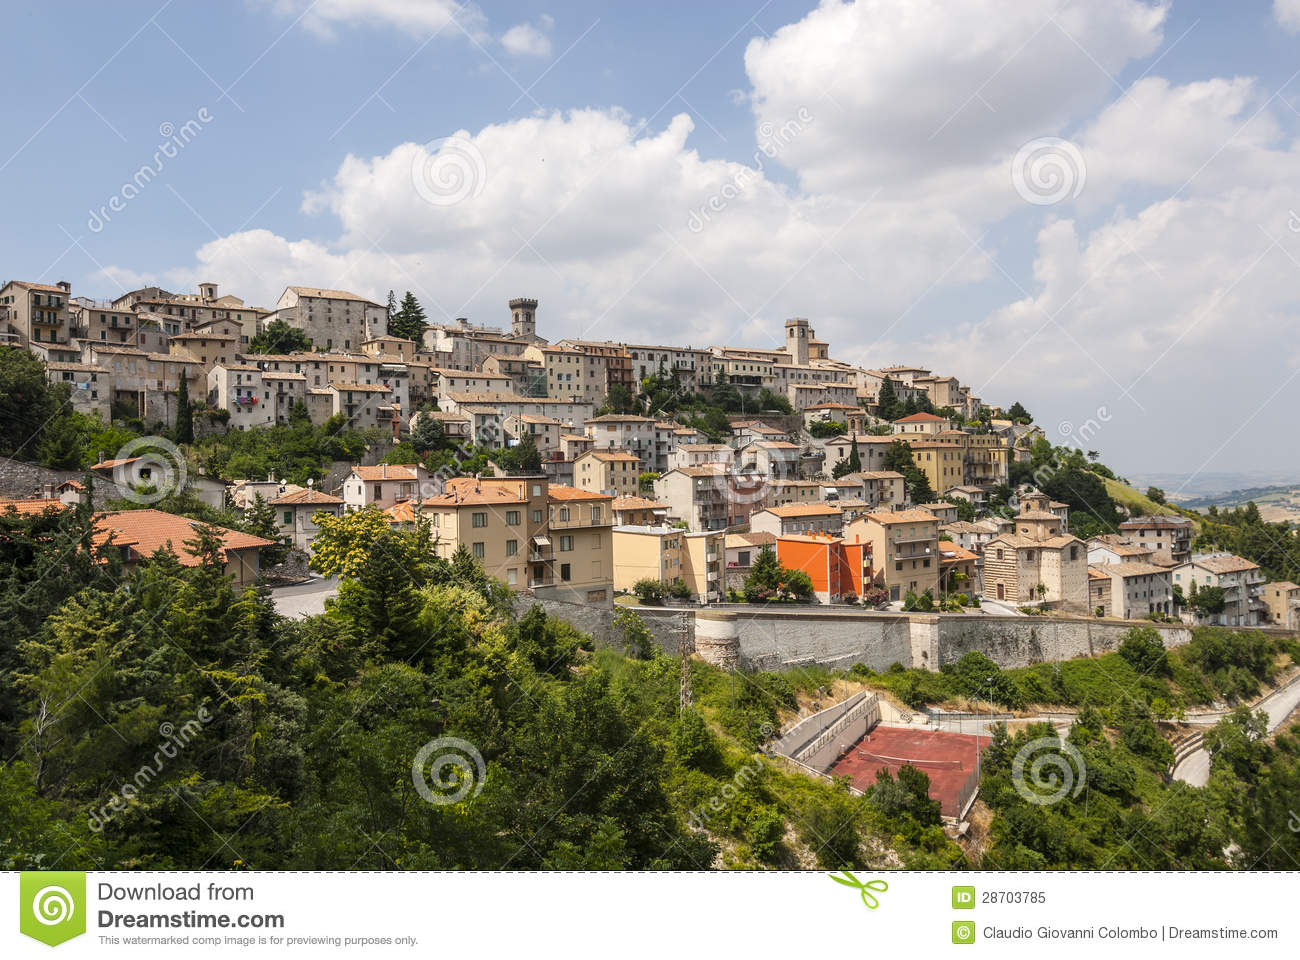 Arcevia Italy  city photo : Panoramic view of Arcevia Pesaro Urbino, Marches, Italy at summer.